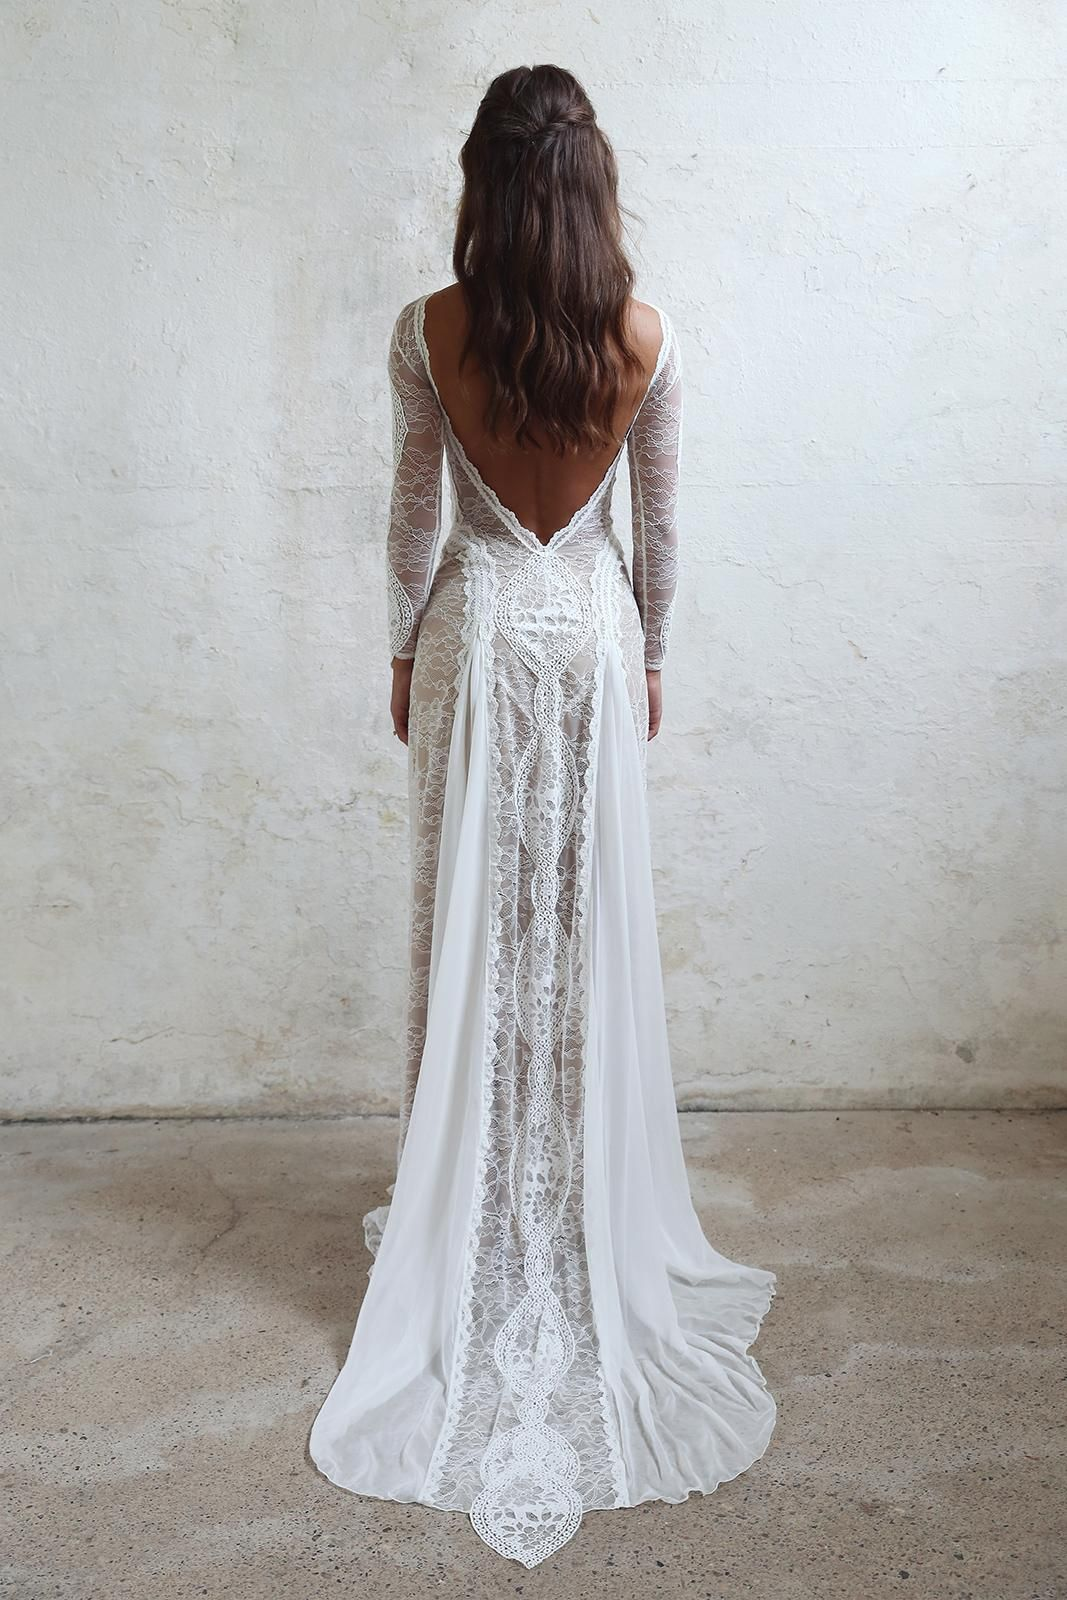 Inca Gown Low Back Wedding Dress Grace Loves Lace Bohemian Wedding Dress Lace Bohemian Wedding Dresses Wedding Dresses